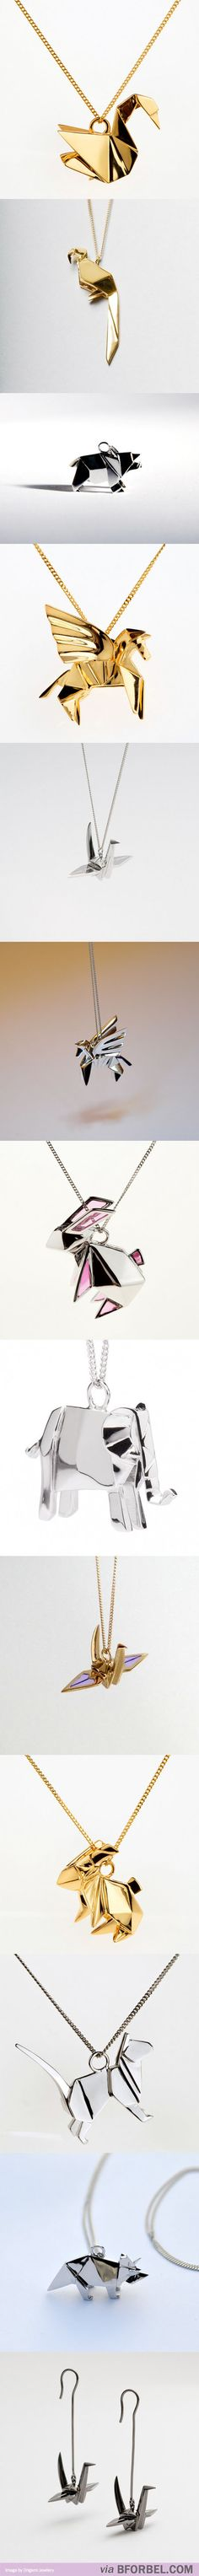 Oragami Necklaces